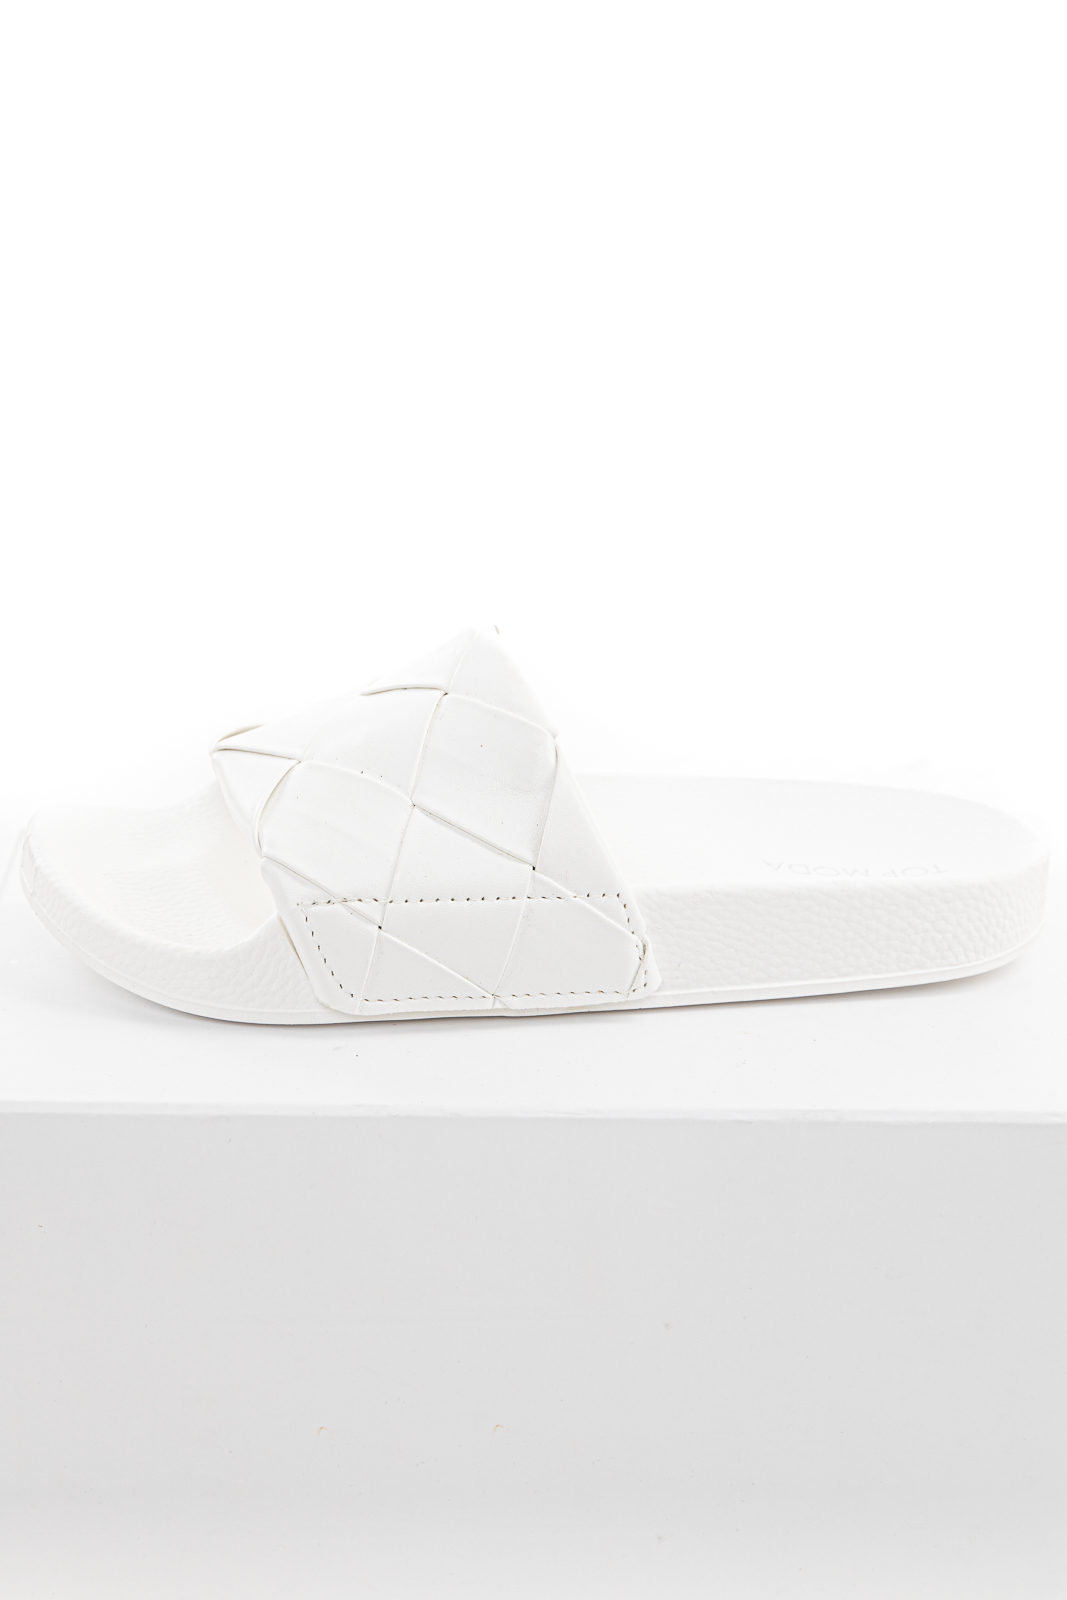 Off White Woven Strap Textured Slip On Sandals